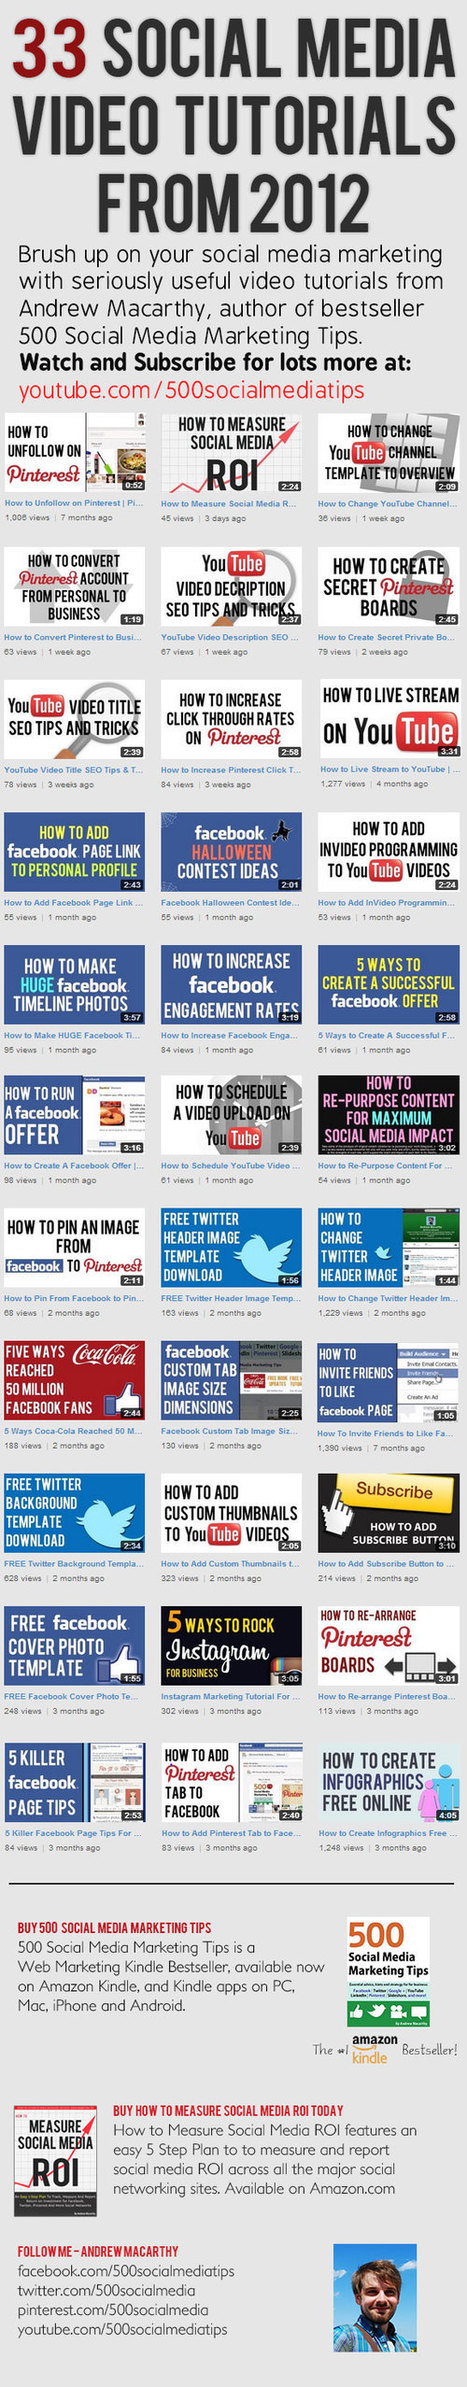 33 Social Media Video Tutorials [INFOGRAPHIC] | Social-Network-Stories | Scoop.it